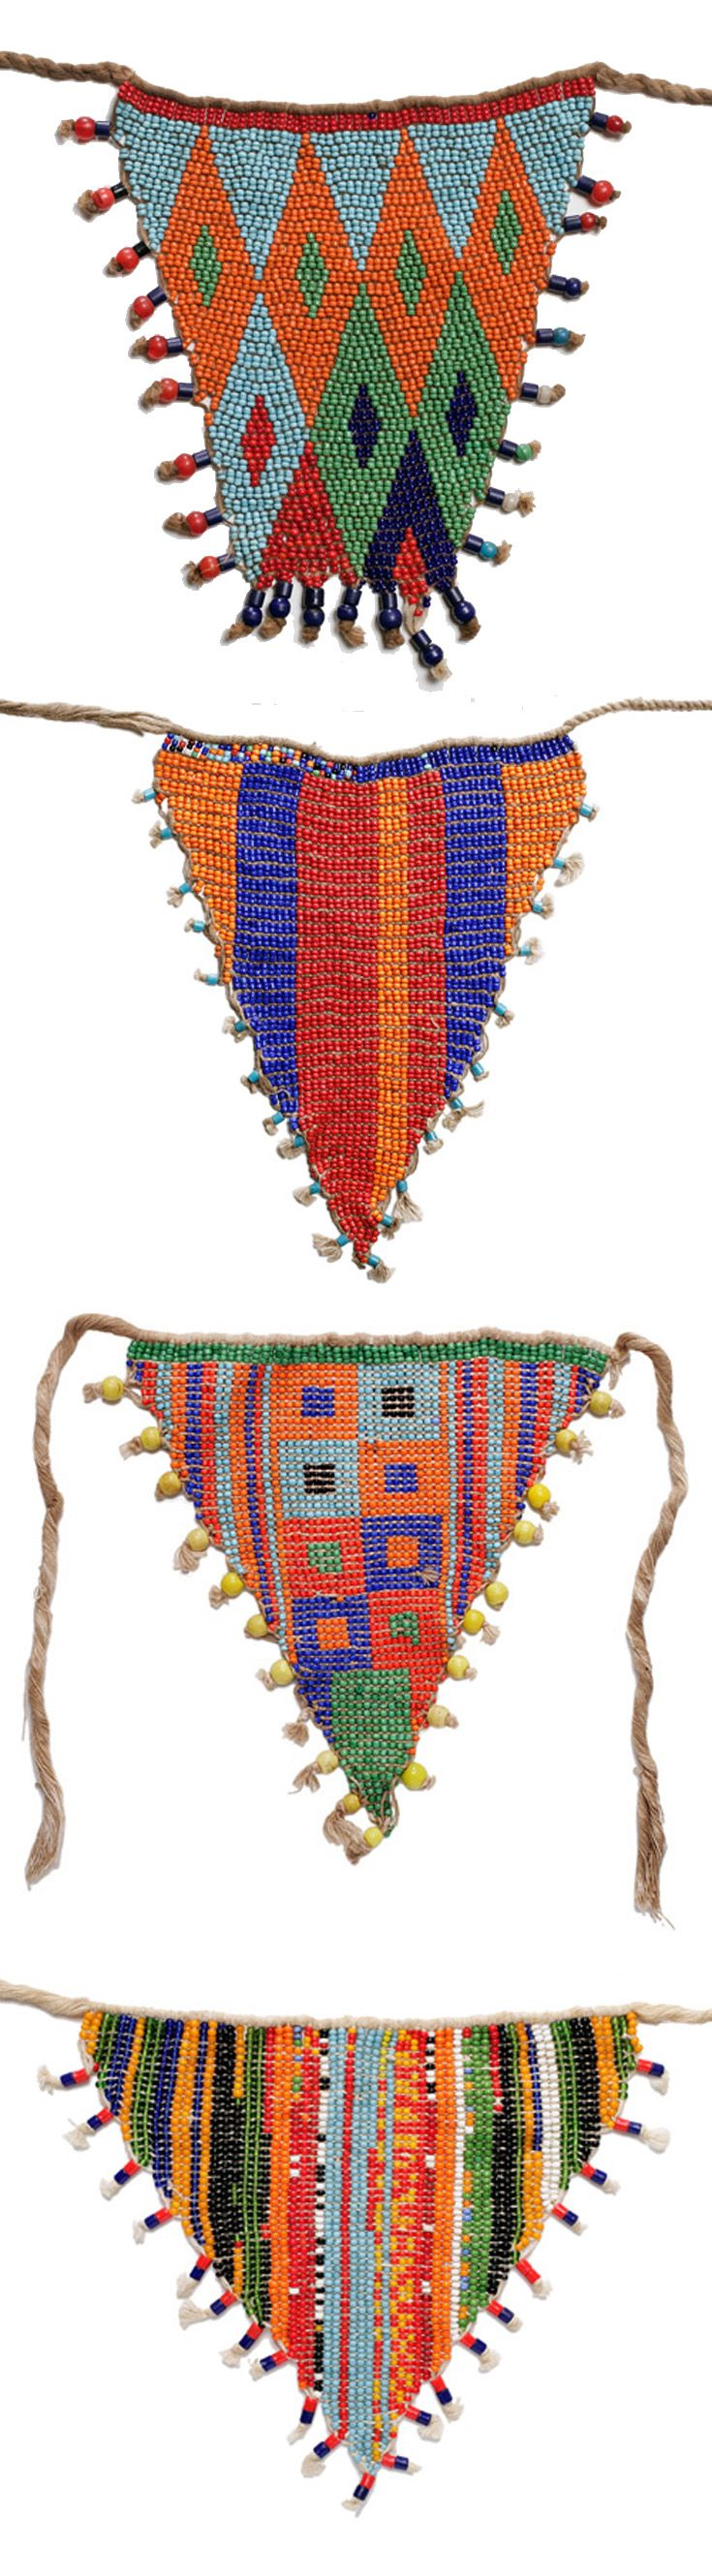 Africa | Girl aprons (cache-sexe) from the Kirdi people of Northern Cameroon | Glass beads, cowrie shells and fiber | 20th century